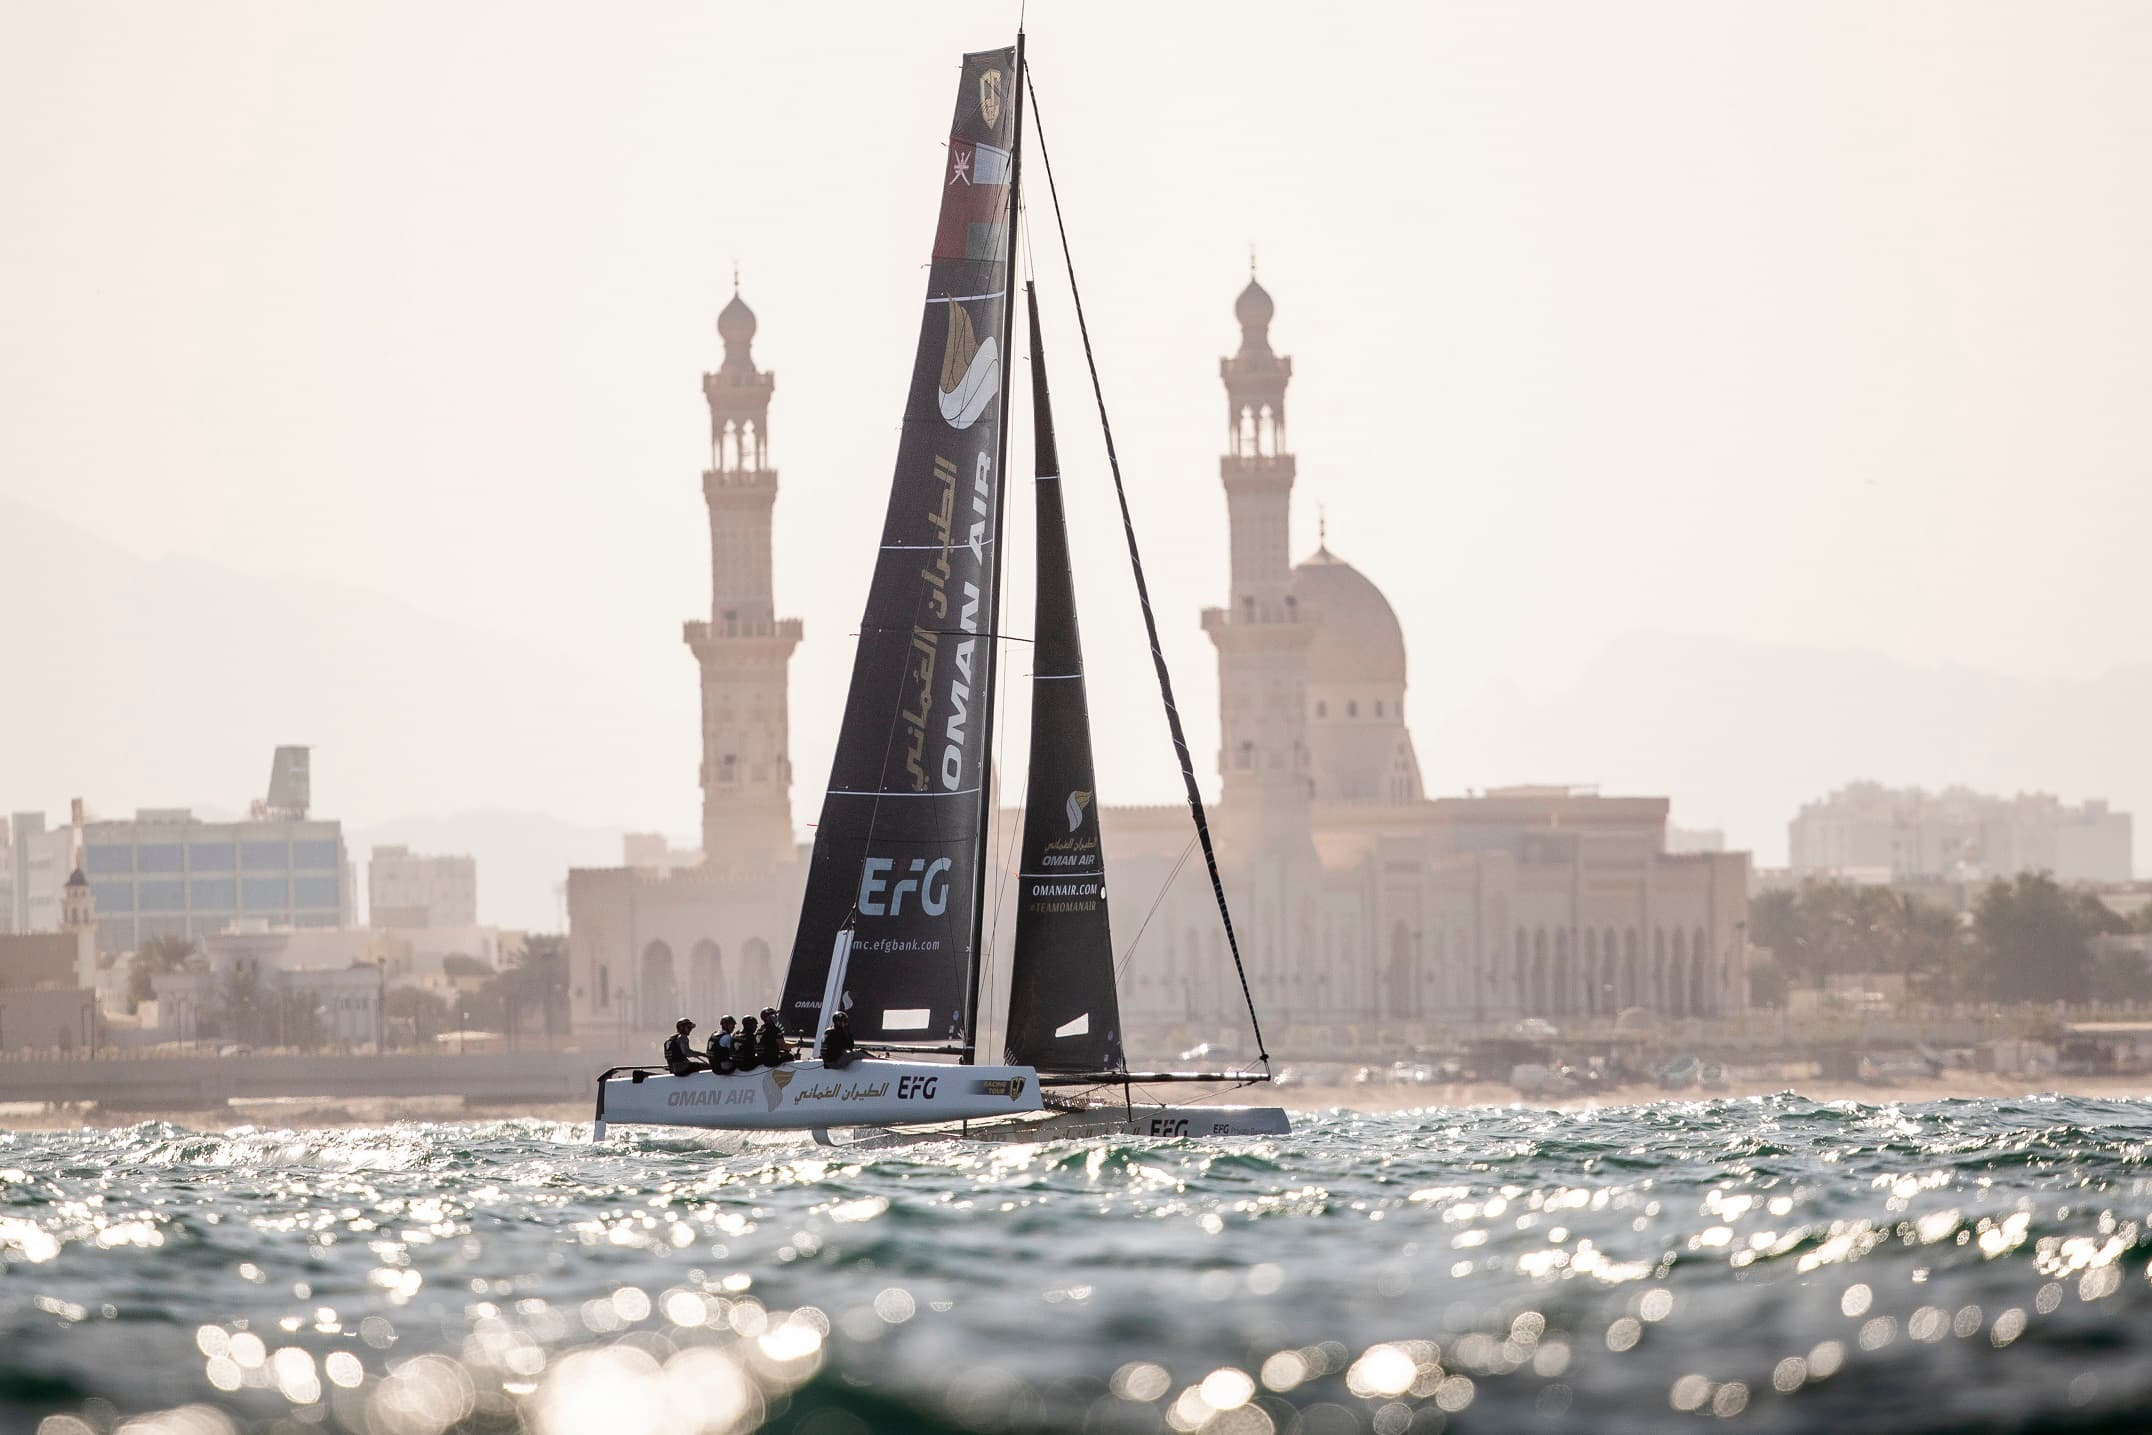 Team Oman Air finishes second overall after 2019 GC32 Racing Tour season comes to an end with a thrilling regatta in Muscat, Oman